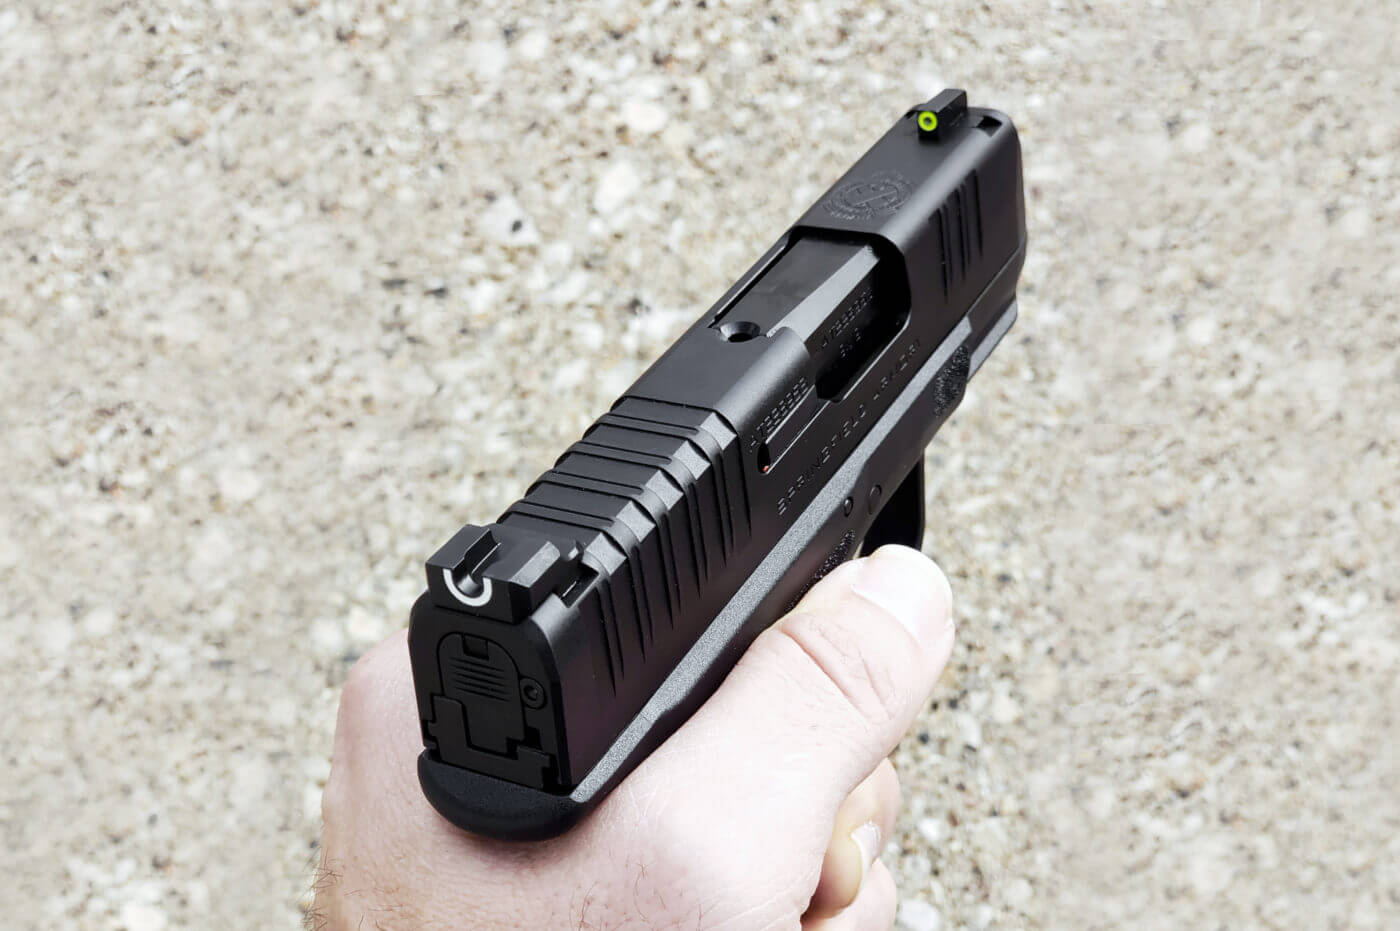 The Springfield Hellcat comes with the best night sights installed at the factory